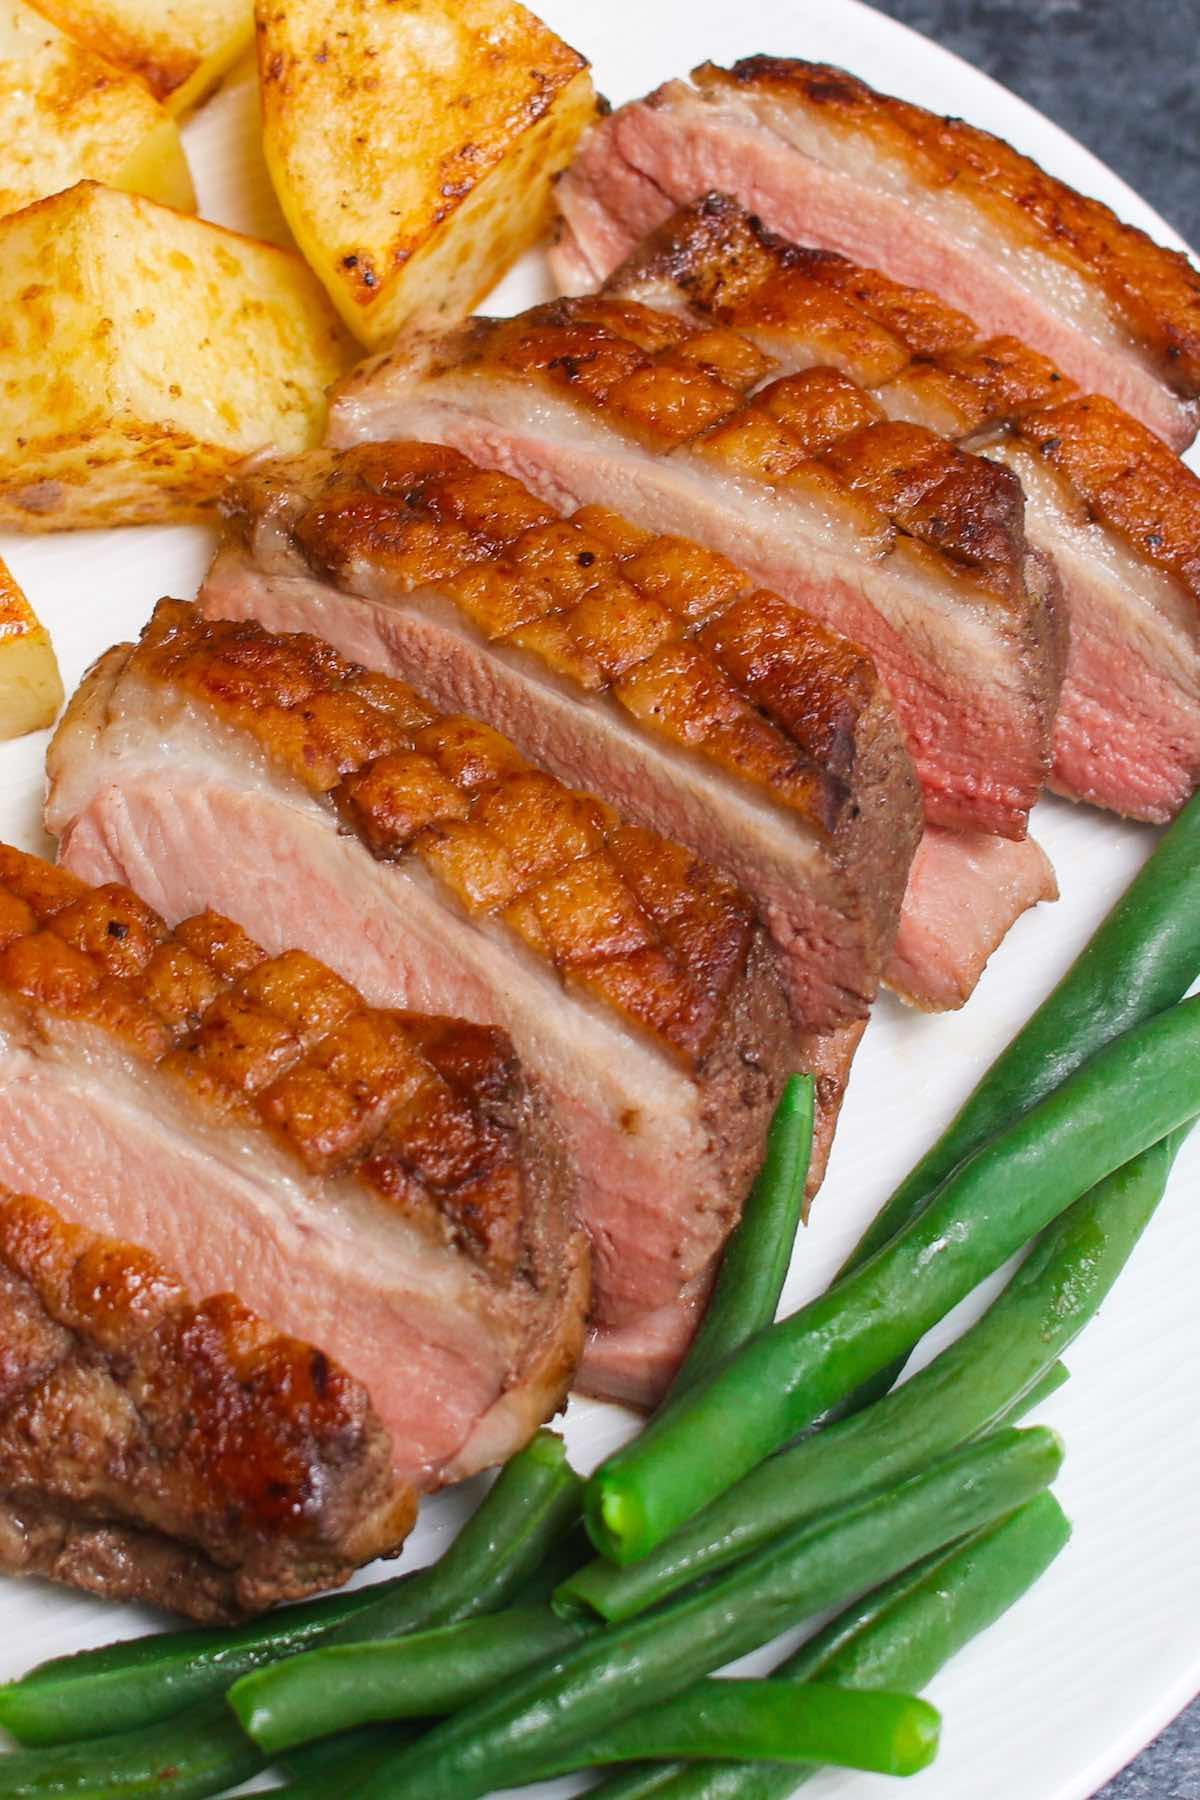 These Sous Vide Duck Breasts have crispy skin on the outside and deeply rich and tender meat on the inside. Sous vide method will have you cooking like a pro, making the restaurant-quality duck breasts at your own home! #SousVideDuckBreast #DuckBreast